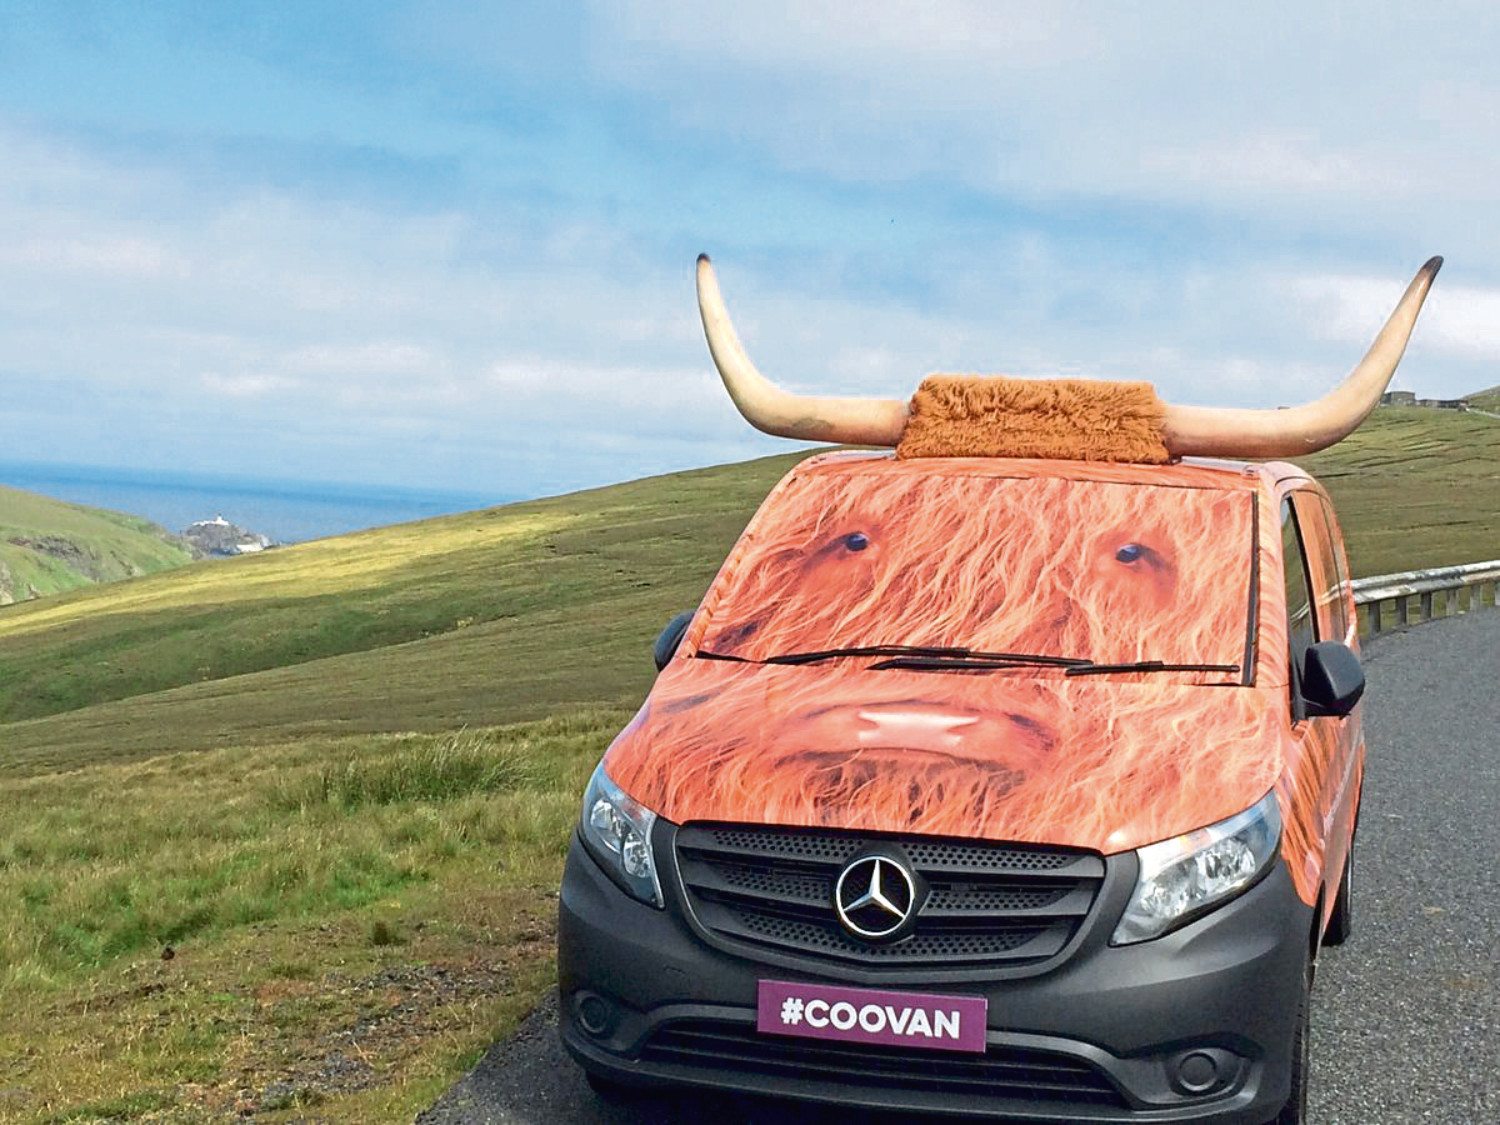 VisitScotland's coo van will be at the Aberdeen Science Centre